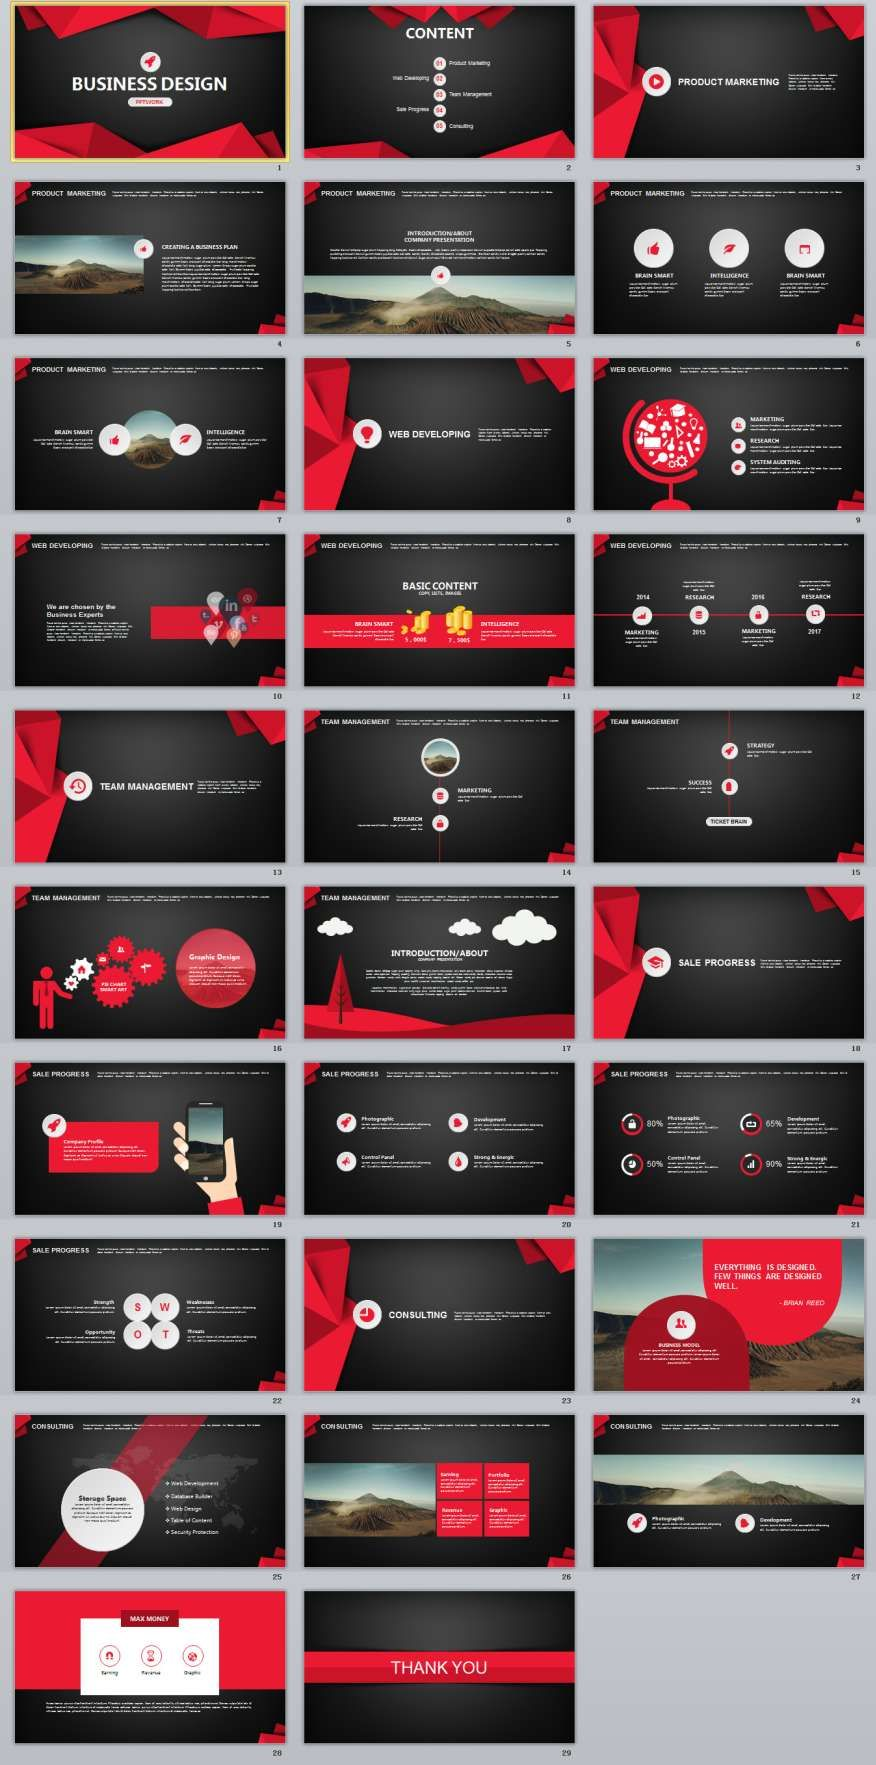 29 red black business plan powerpoint templates business planning 29 red black business plan powerpoint templates toneelgroepblik Images